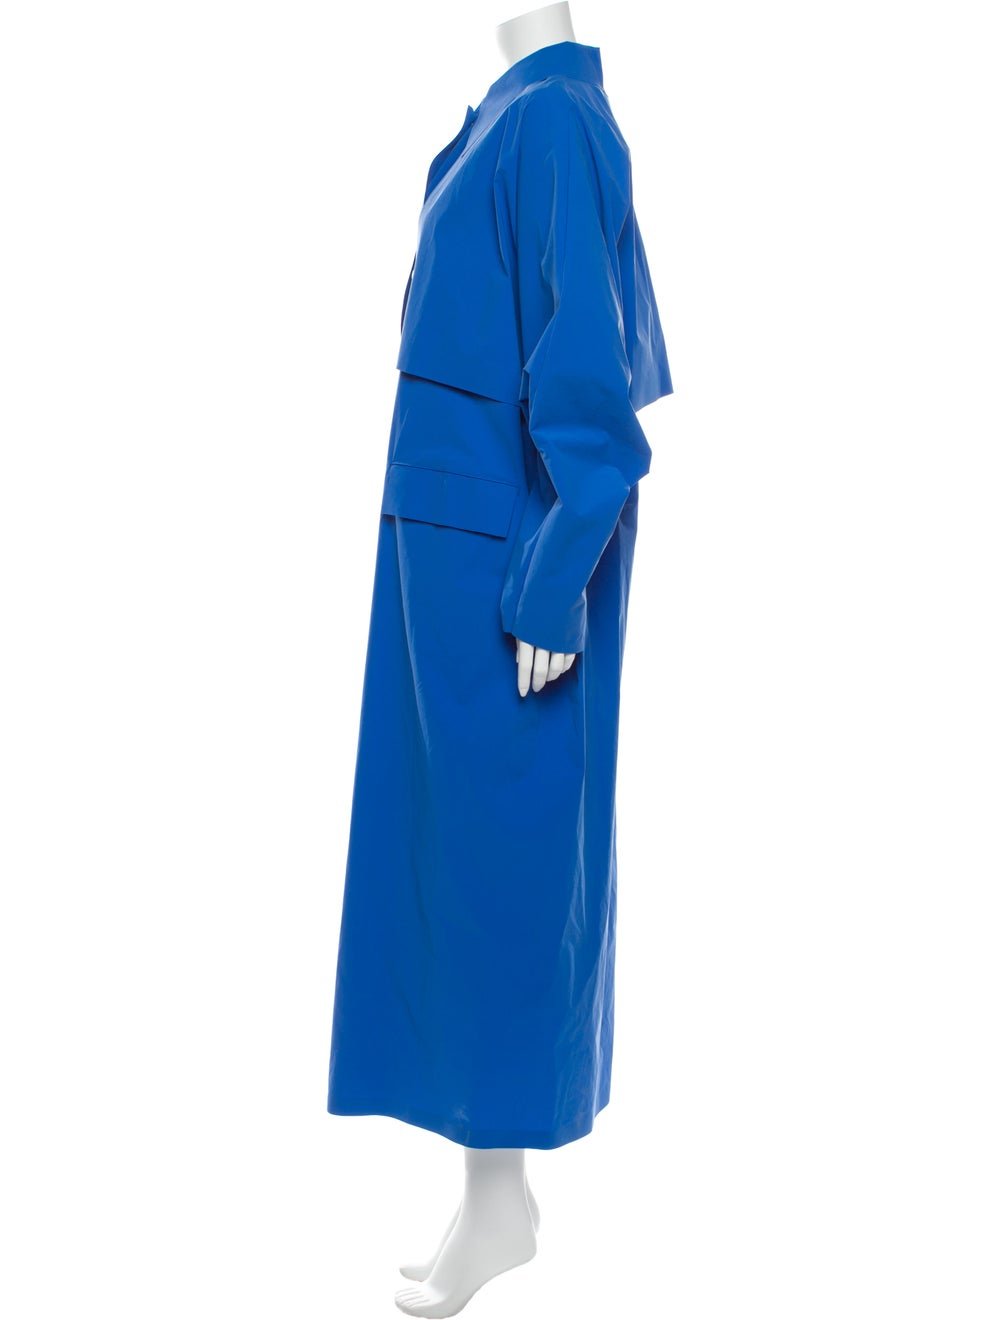 Kassl Trench Coat Blue - image 2